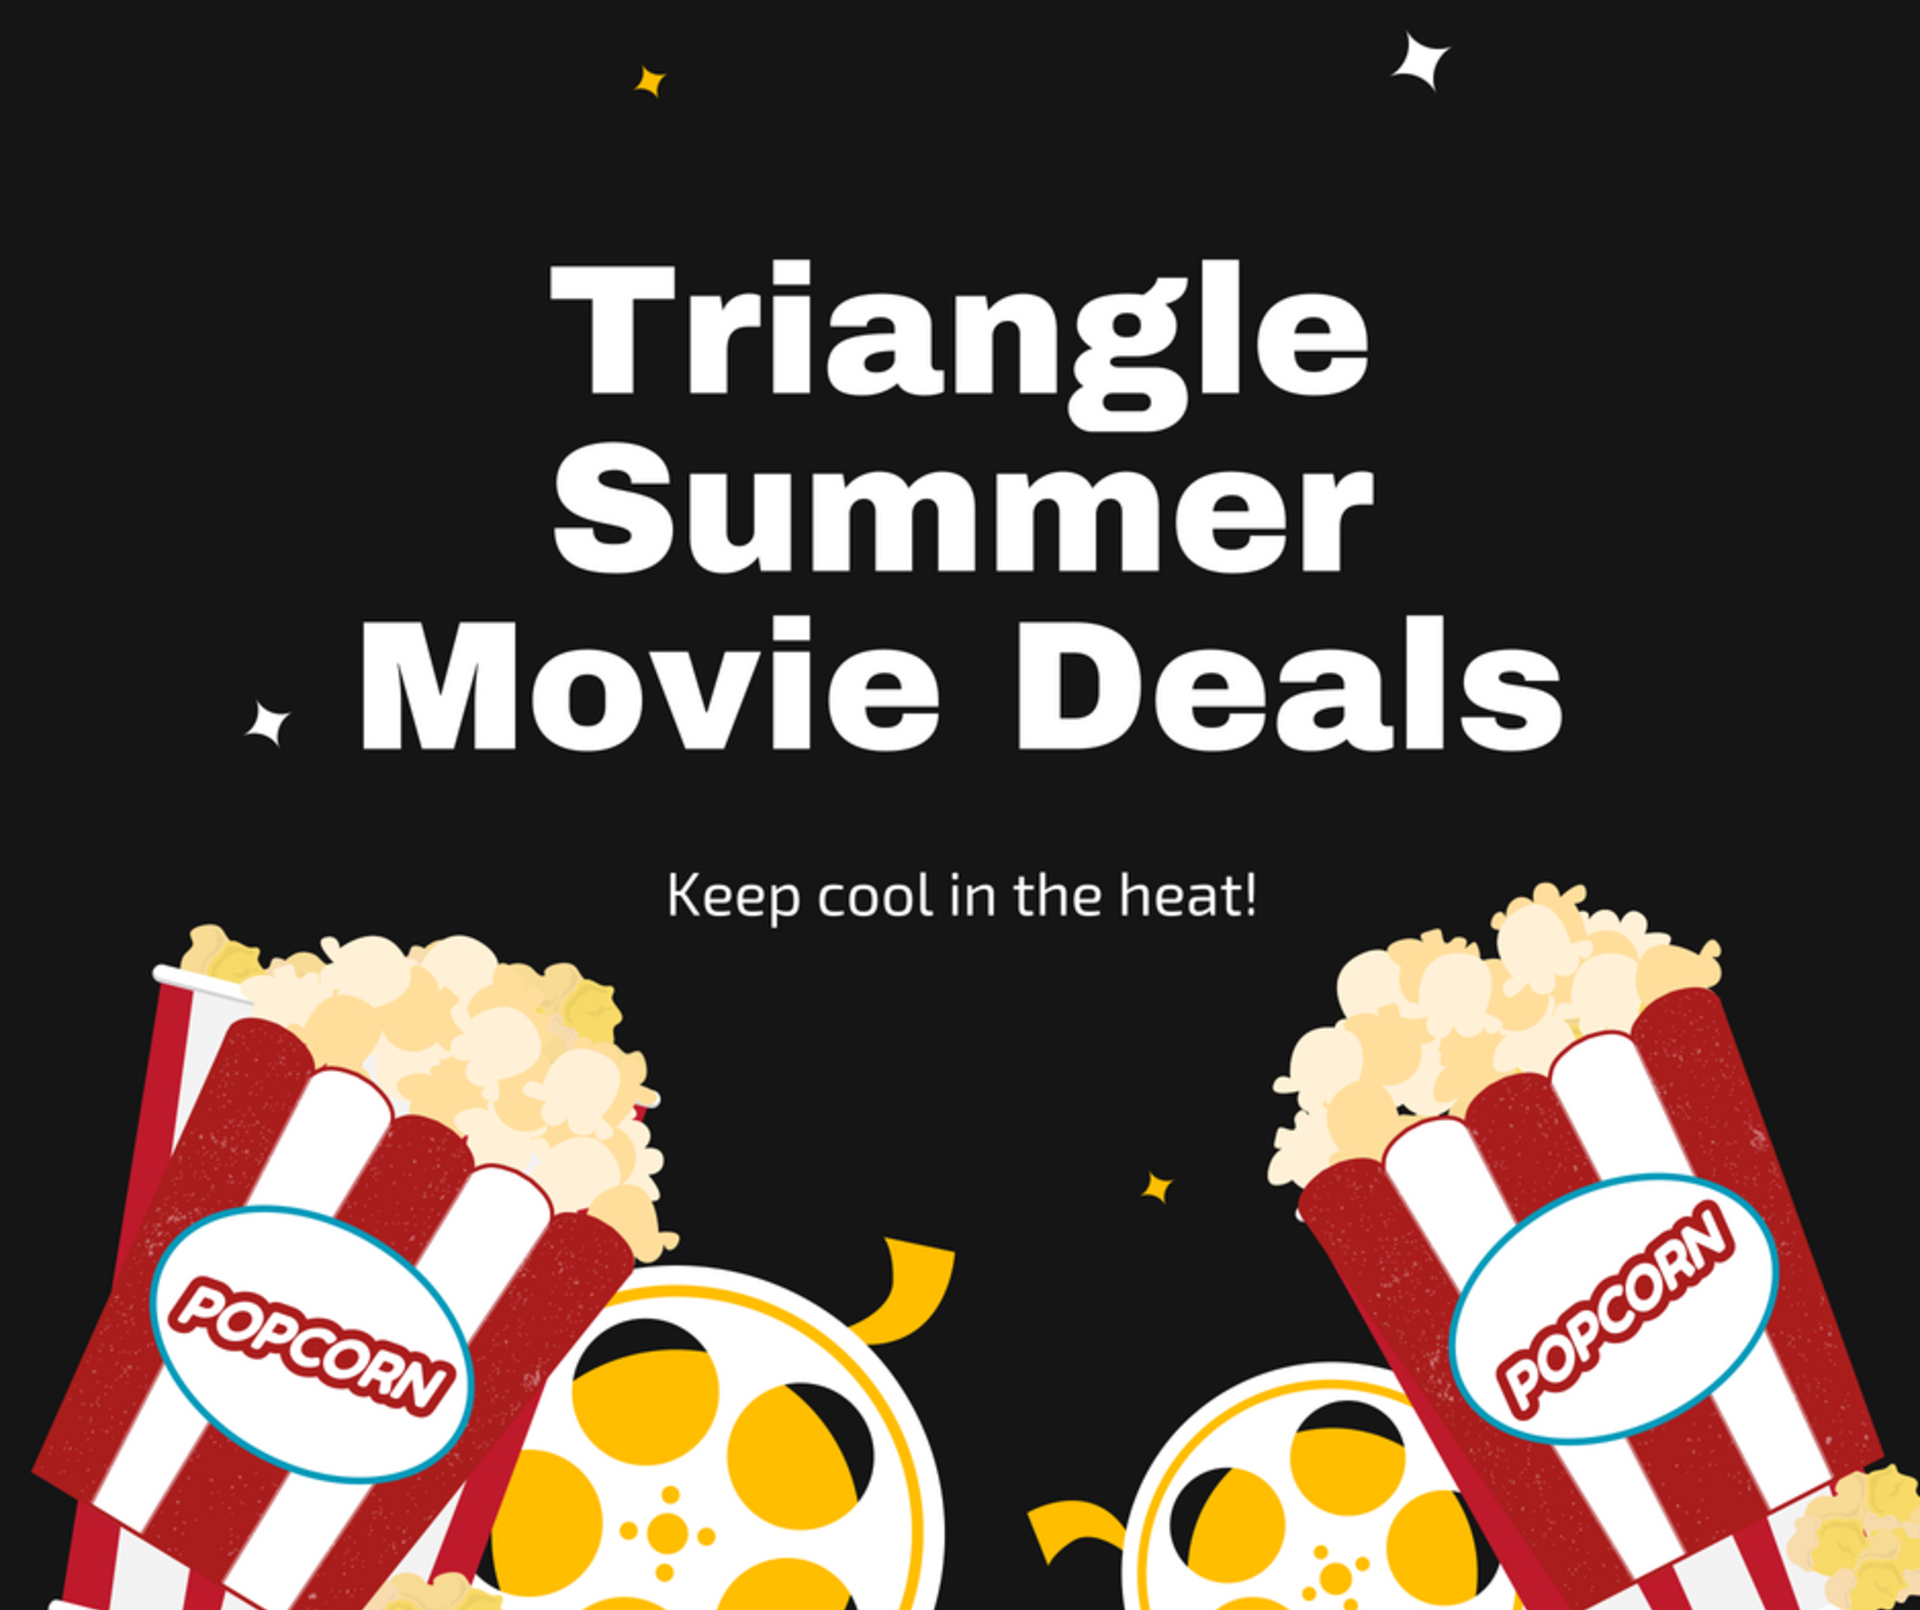 Stay Cool with Triangle Summer Movie Deals